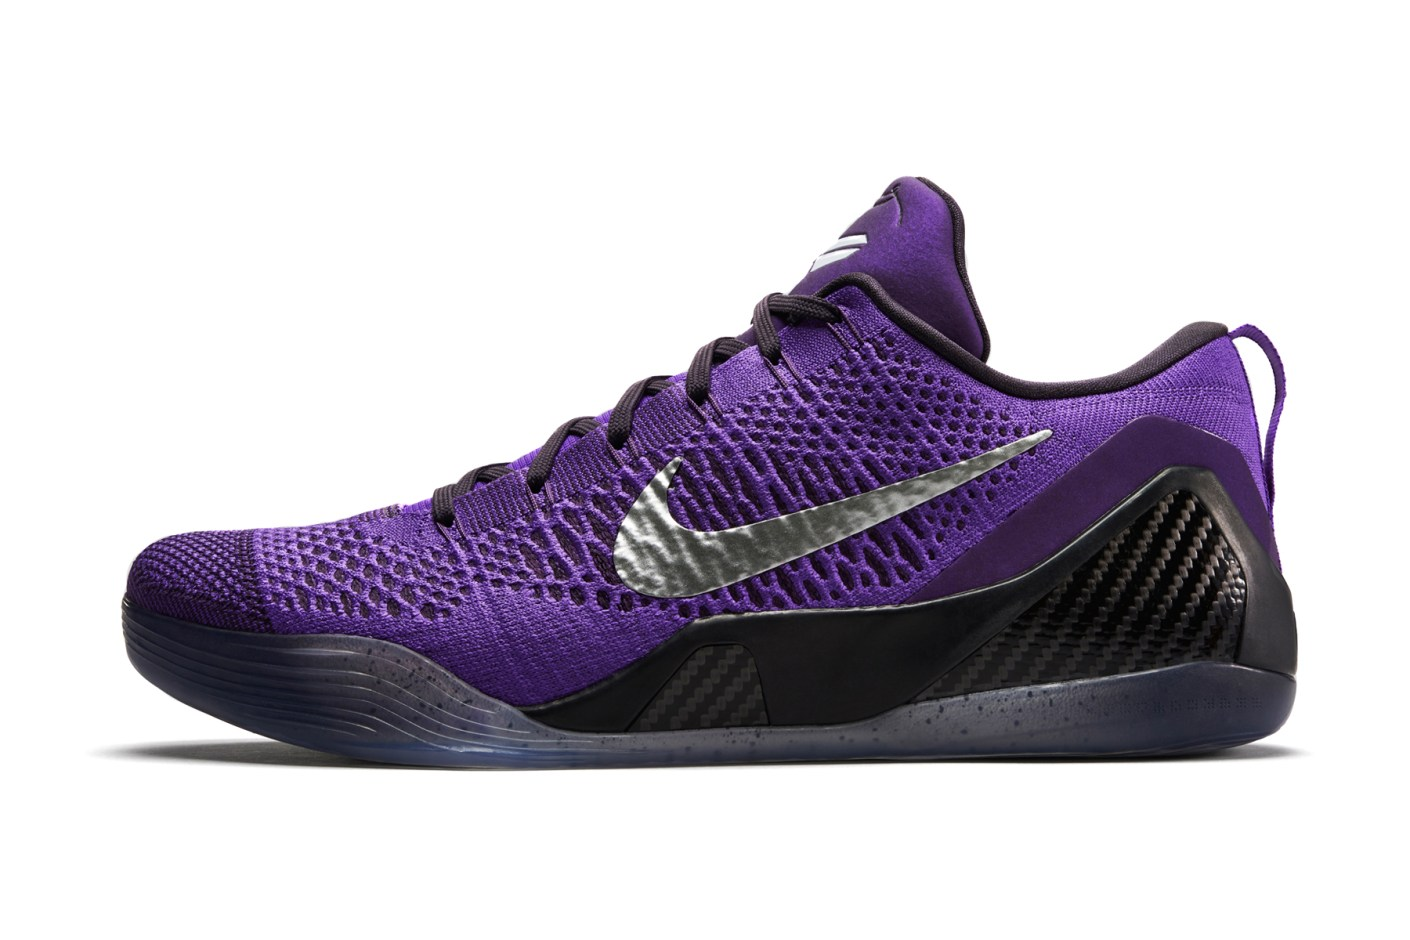 Image of Nike Debuts the Kobe 9 Elite Low